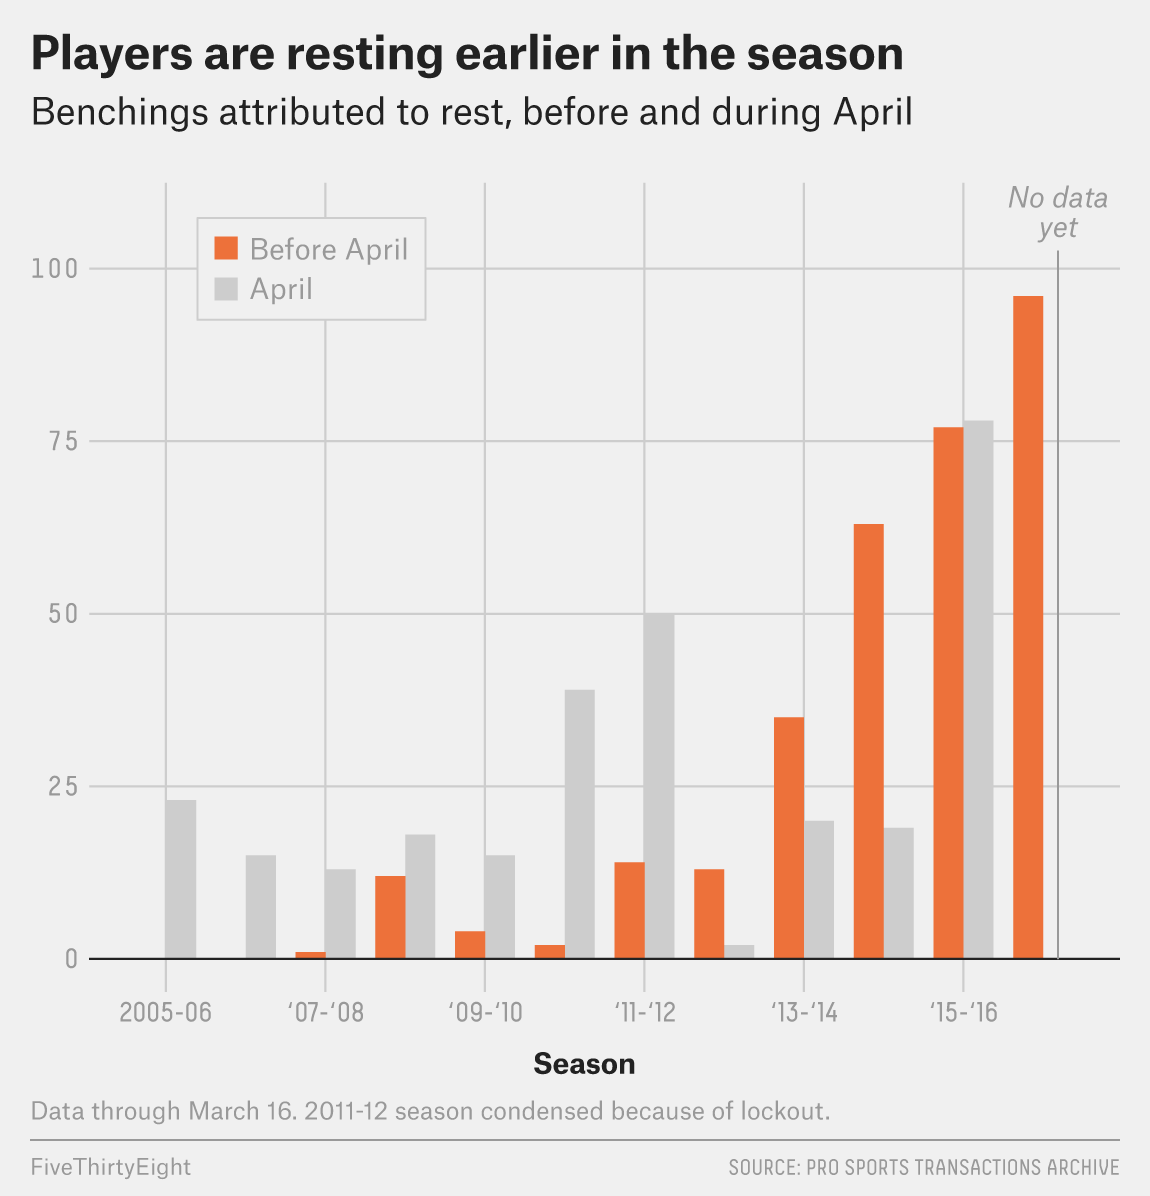 More Recently The Tendency Has Been To Rest Players Even Earlier Like In October